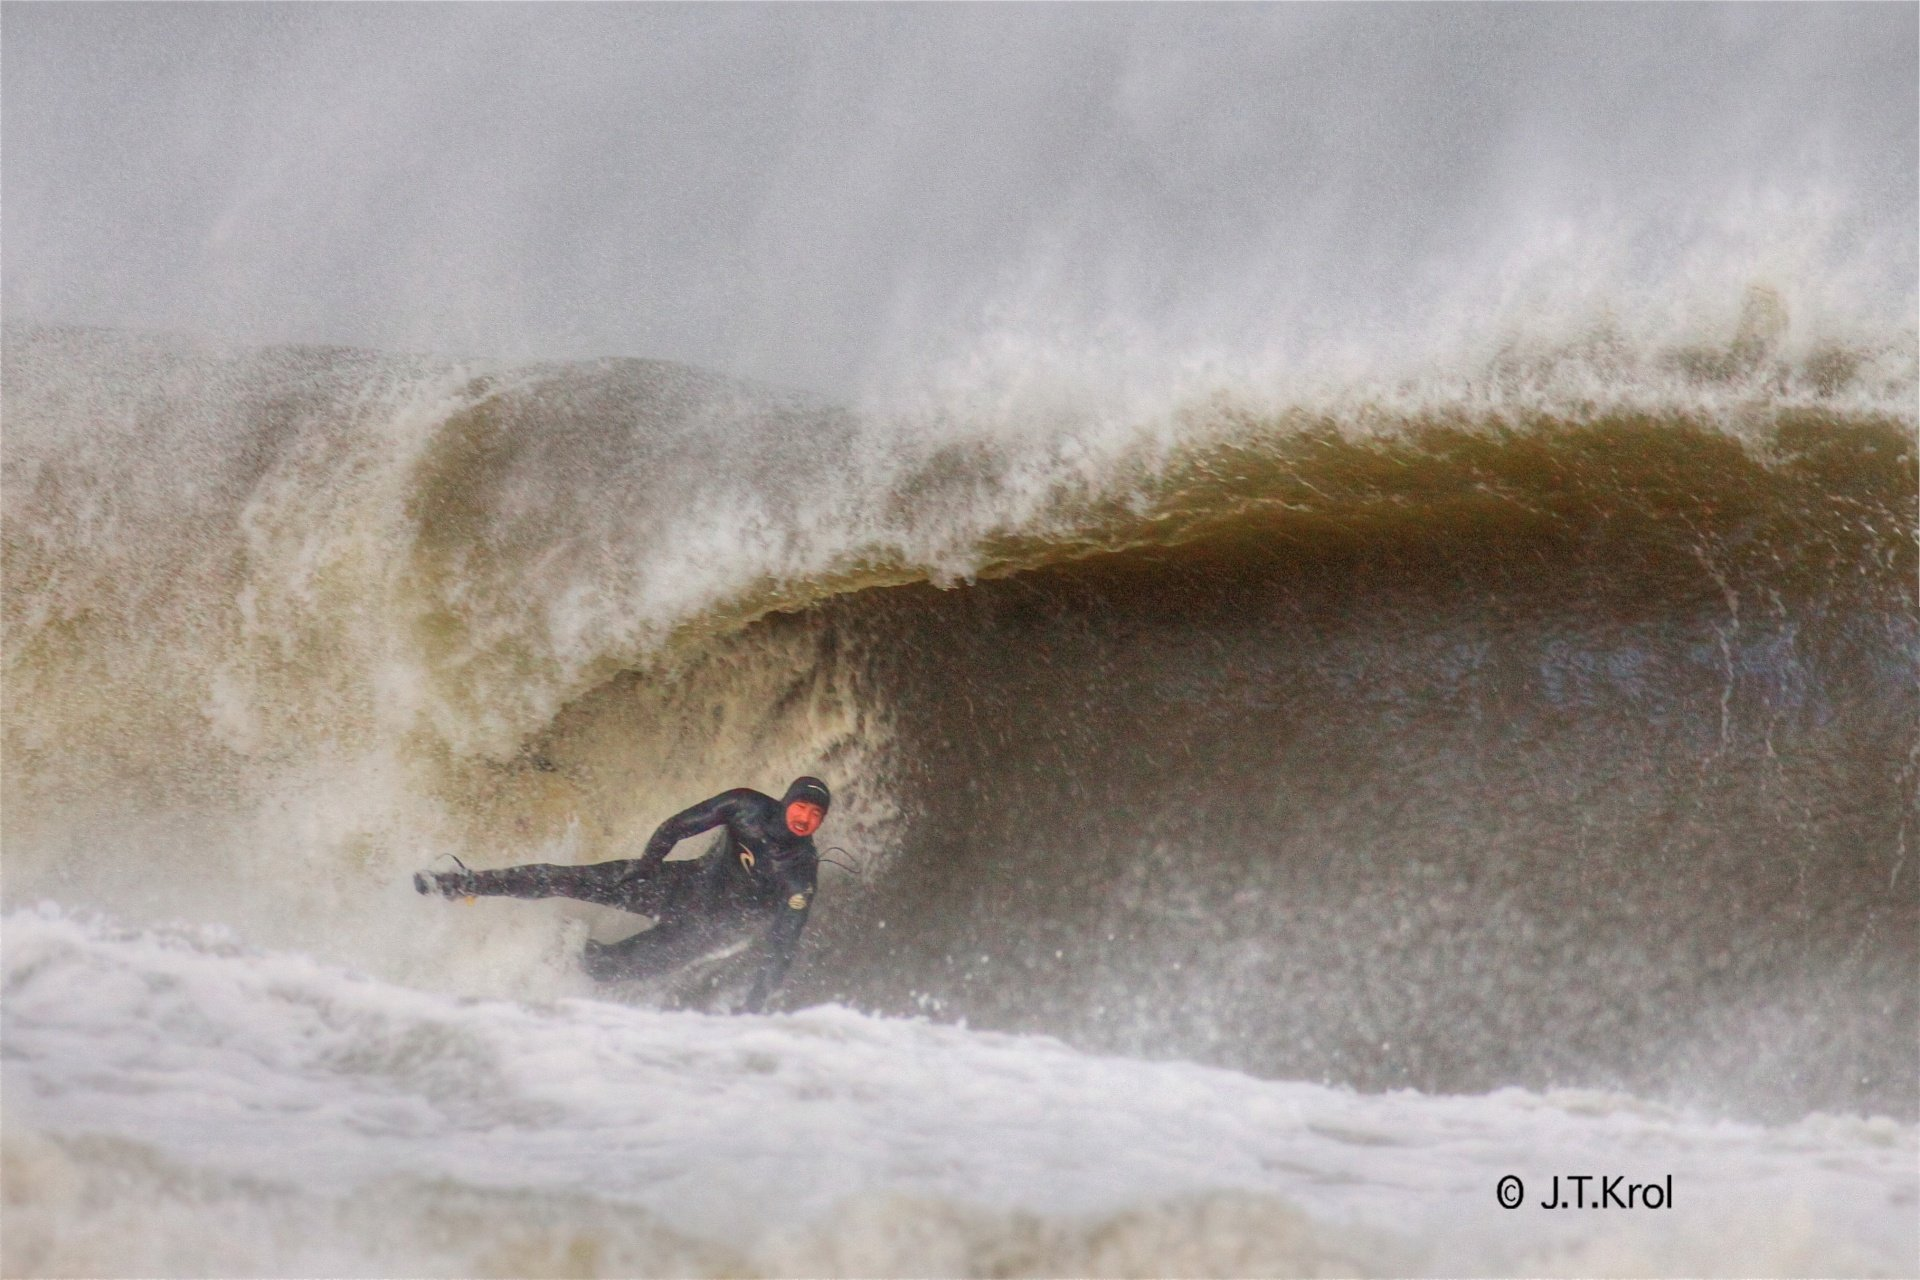 Jan T. Krol's photo of Manasquan